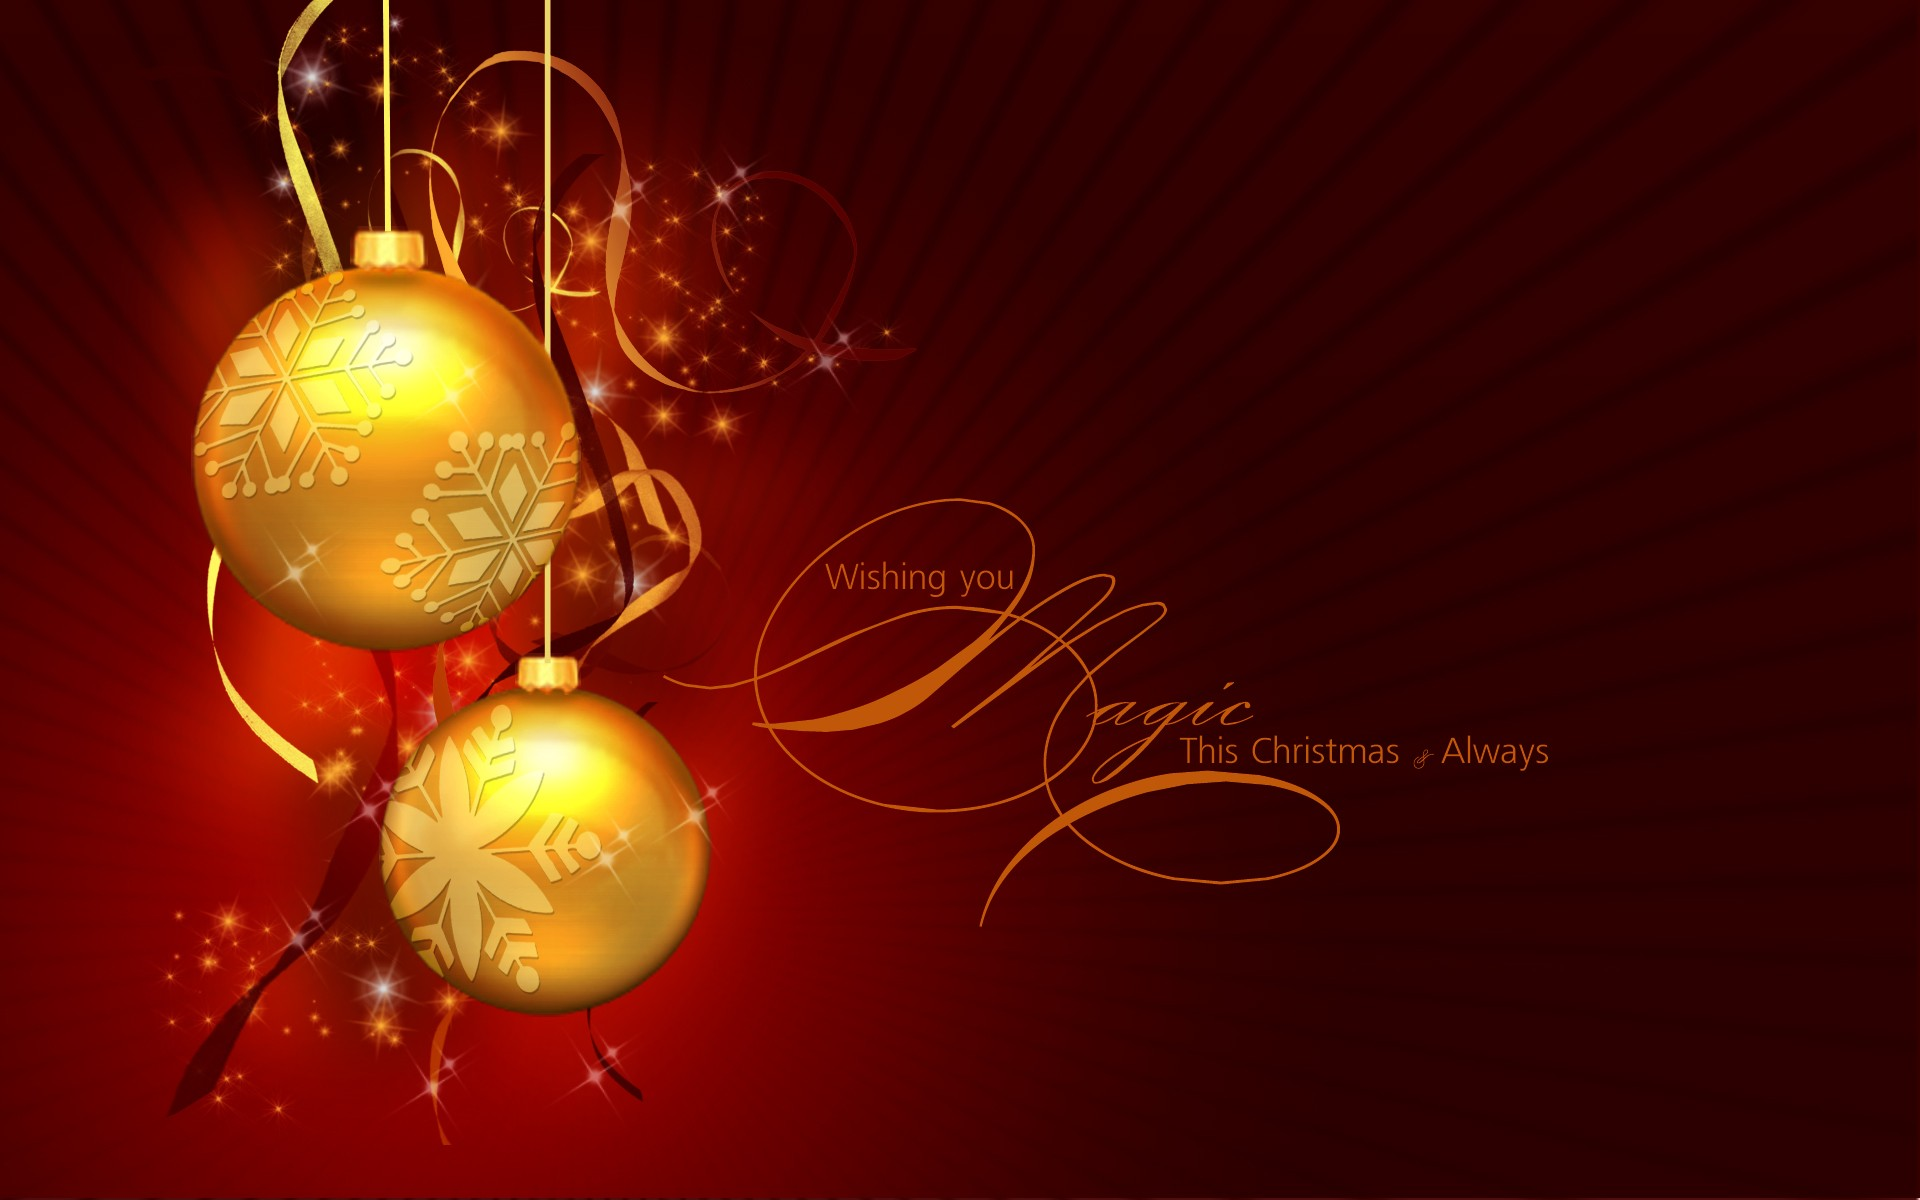 Christmas Wallpapers HD 19202151200 1920x1200